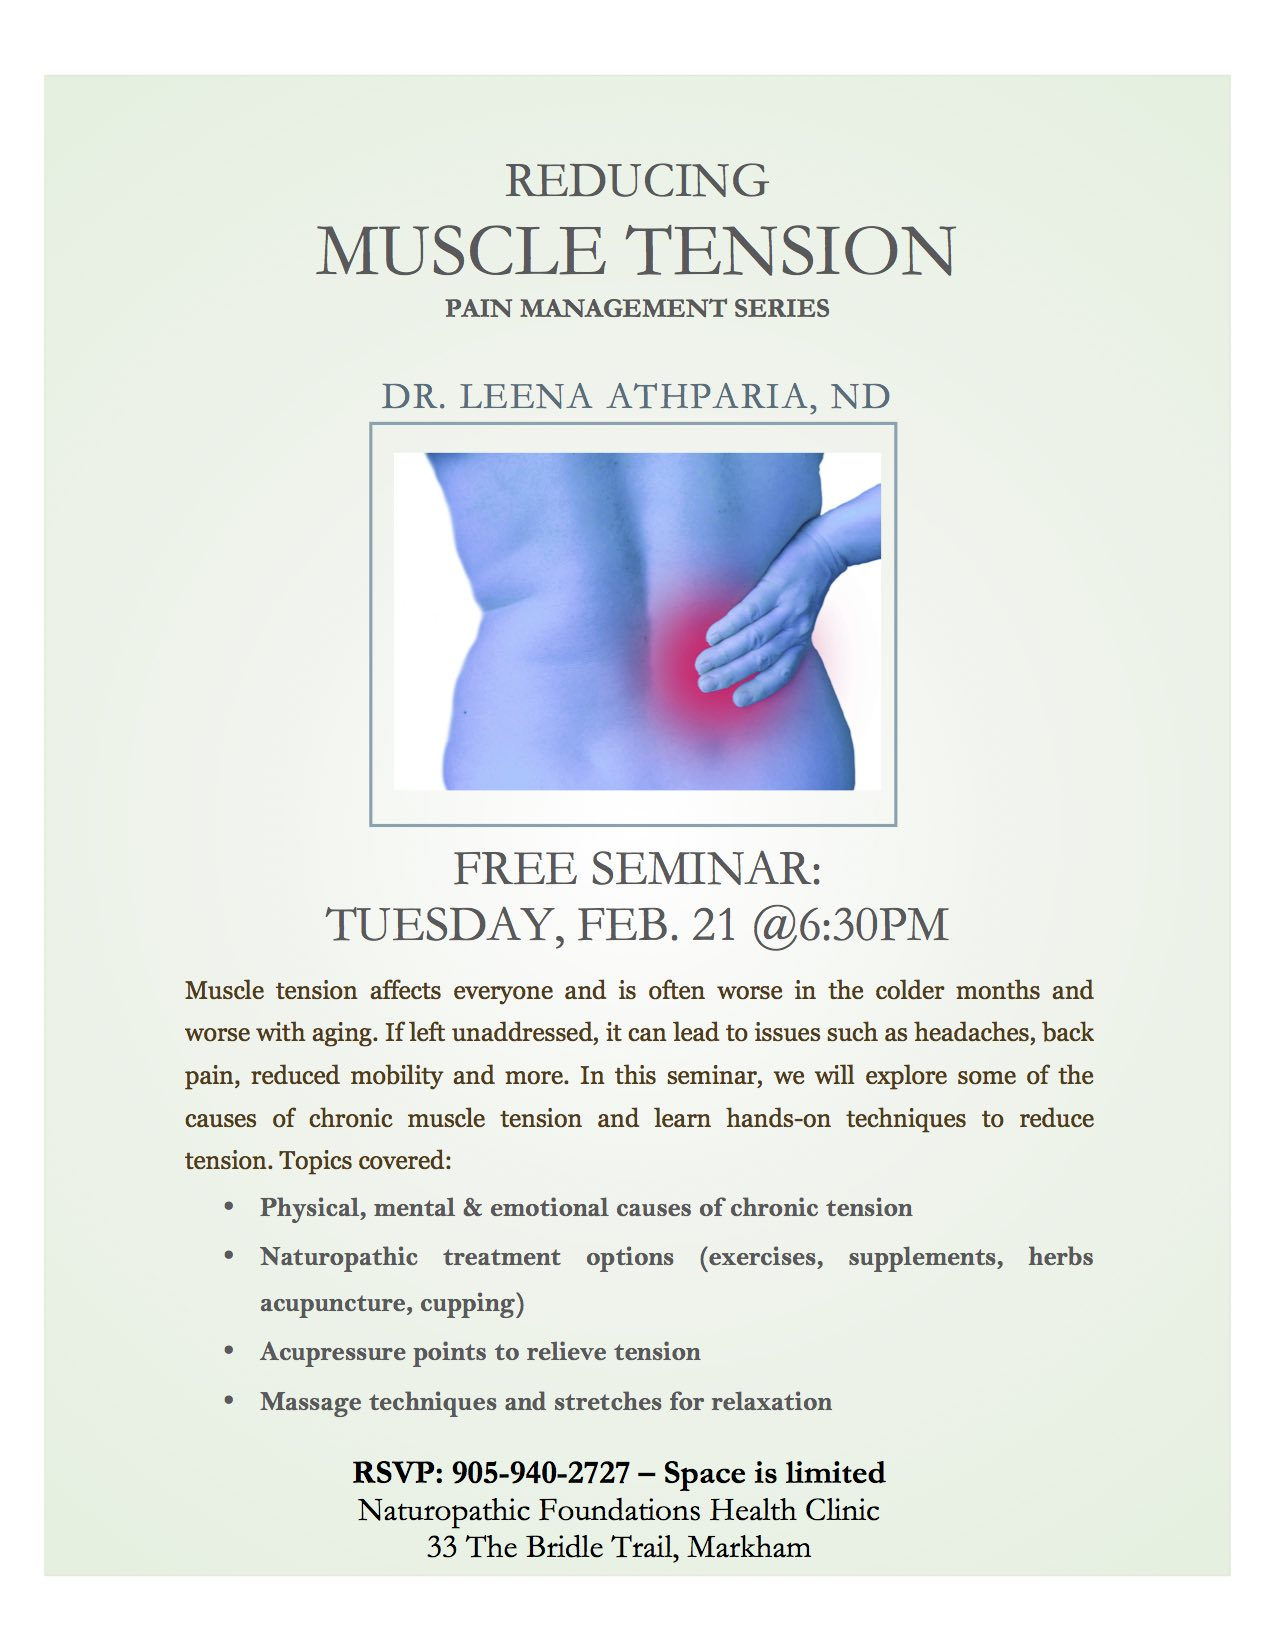 Reducing Muscle Tension